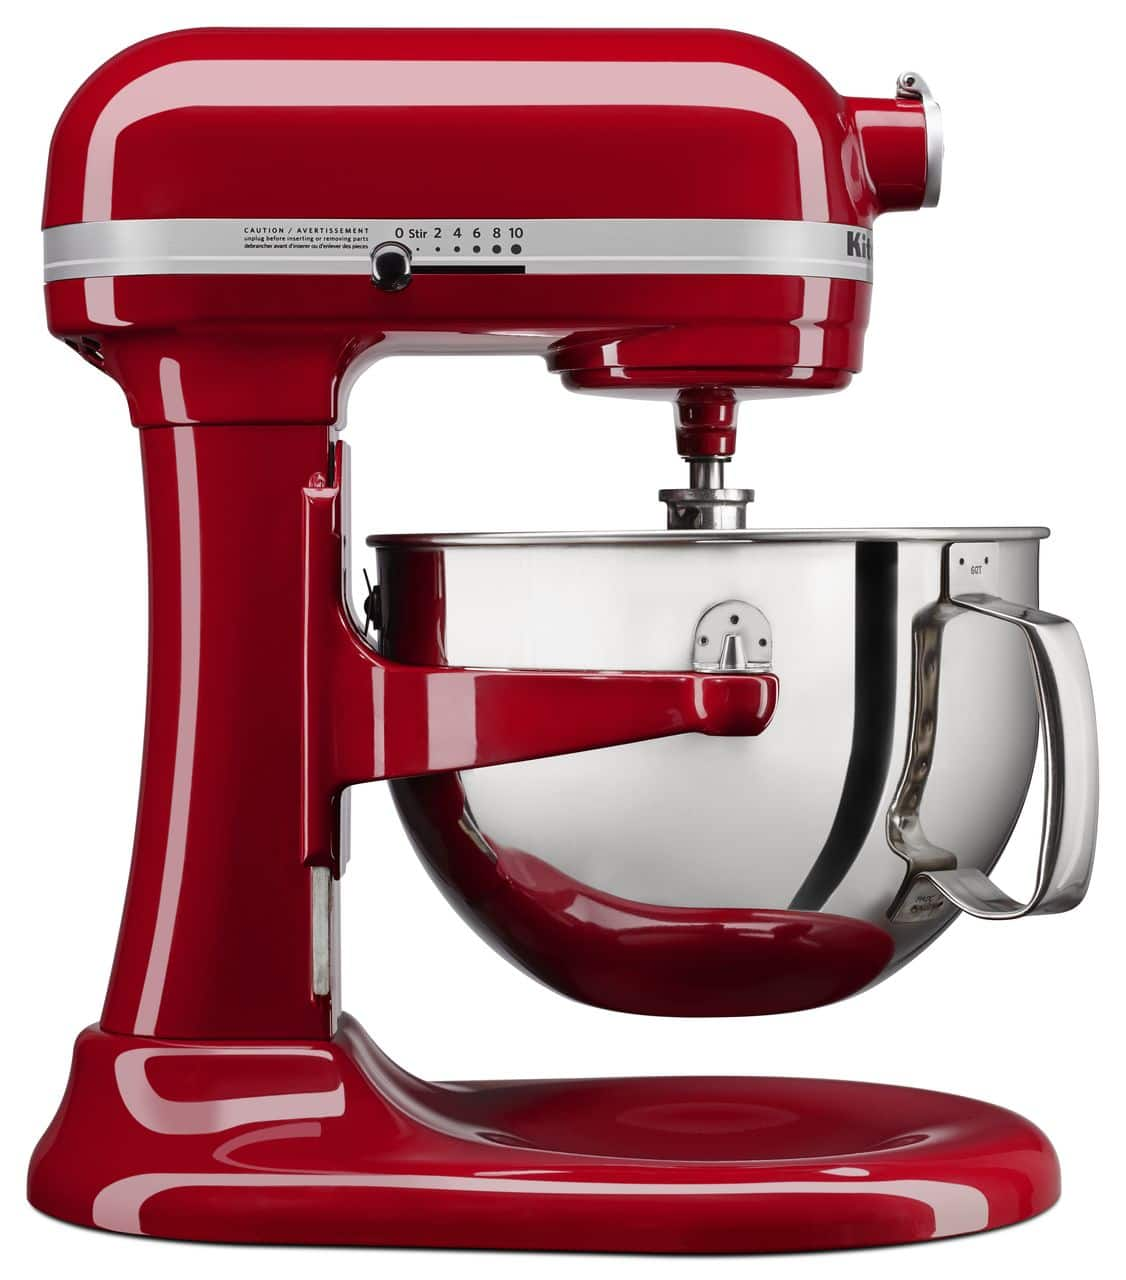 NEW KitchenAid® 6 Quart Bowl-Lift Stand Mixer KL26M1X, via KitchenAid on eBay $250+FS